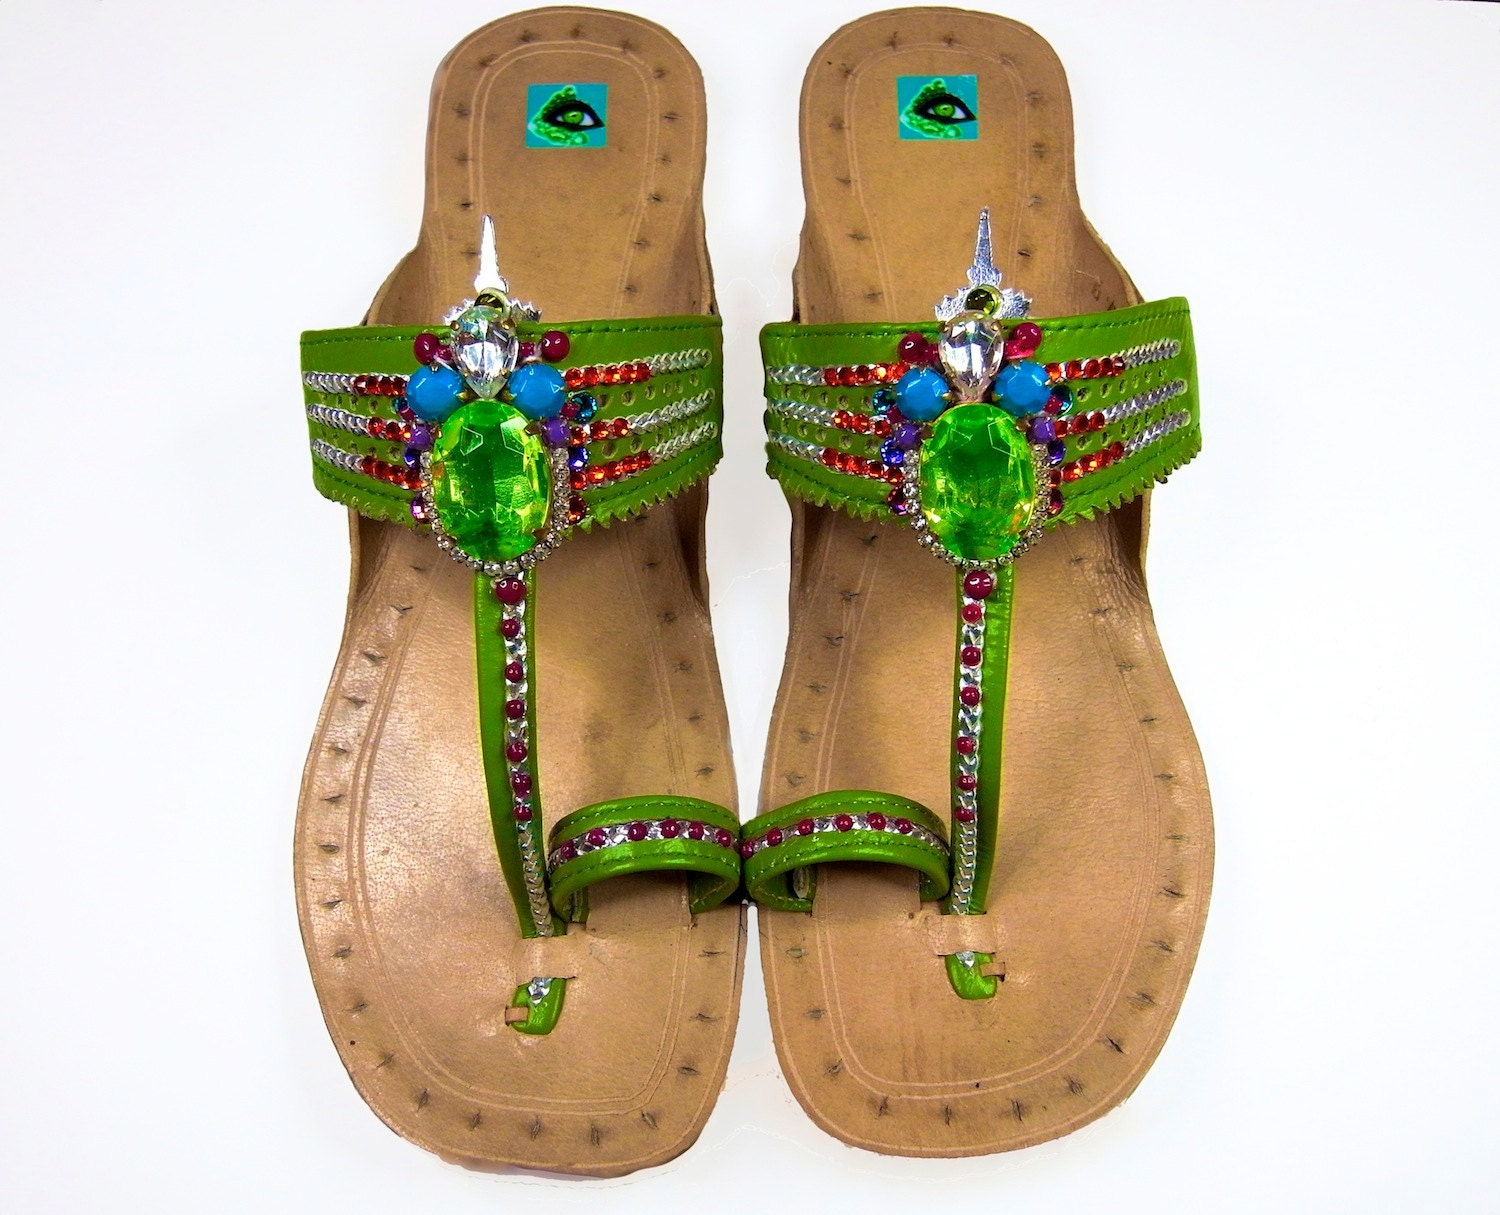 SALE - 15% OFF Paradise Carnivàle - Olivine Green Leather Vintage Embellished Ibiza Sandals - GreenEyeRocks